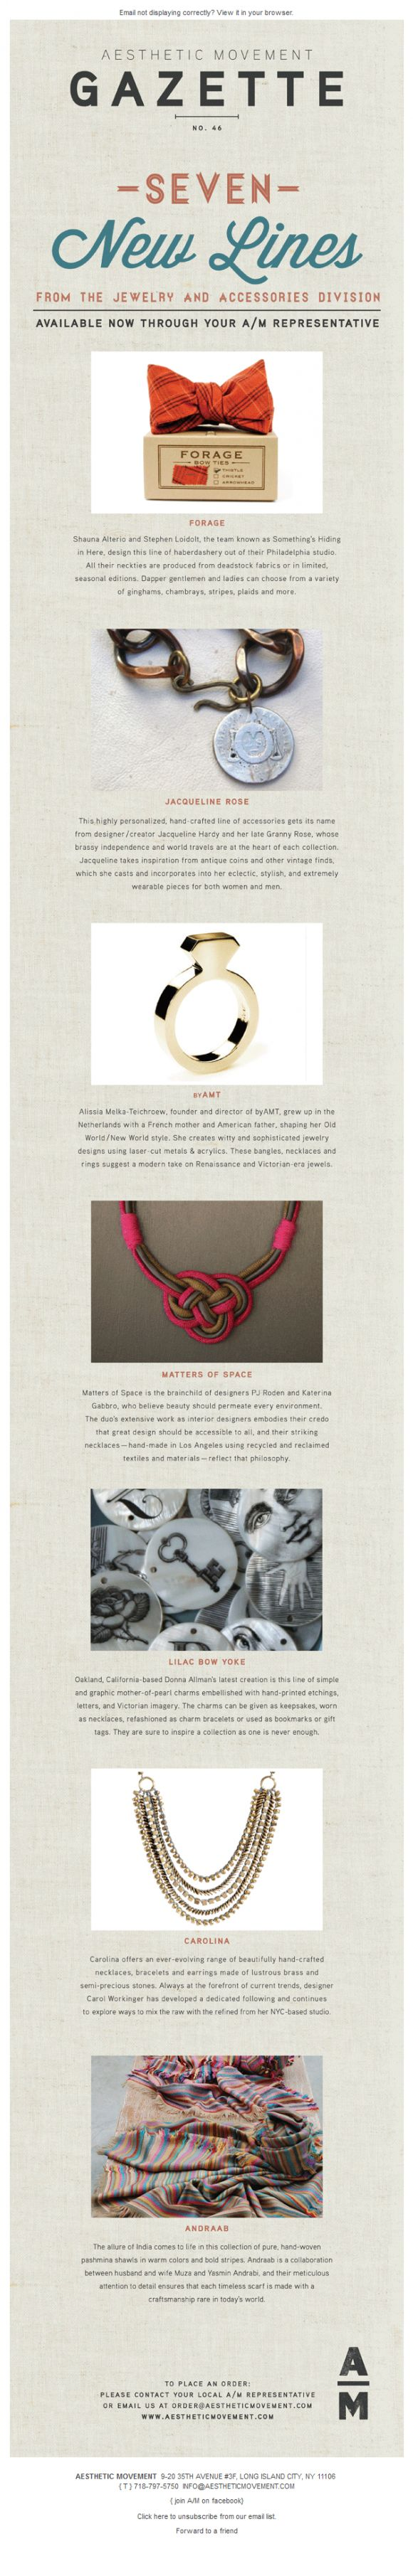 Best Beautiful Email Newsletters  Inspiration Images On